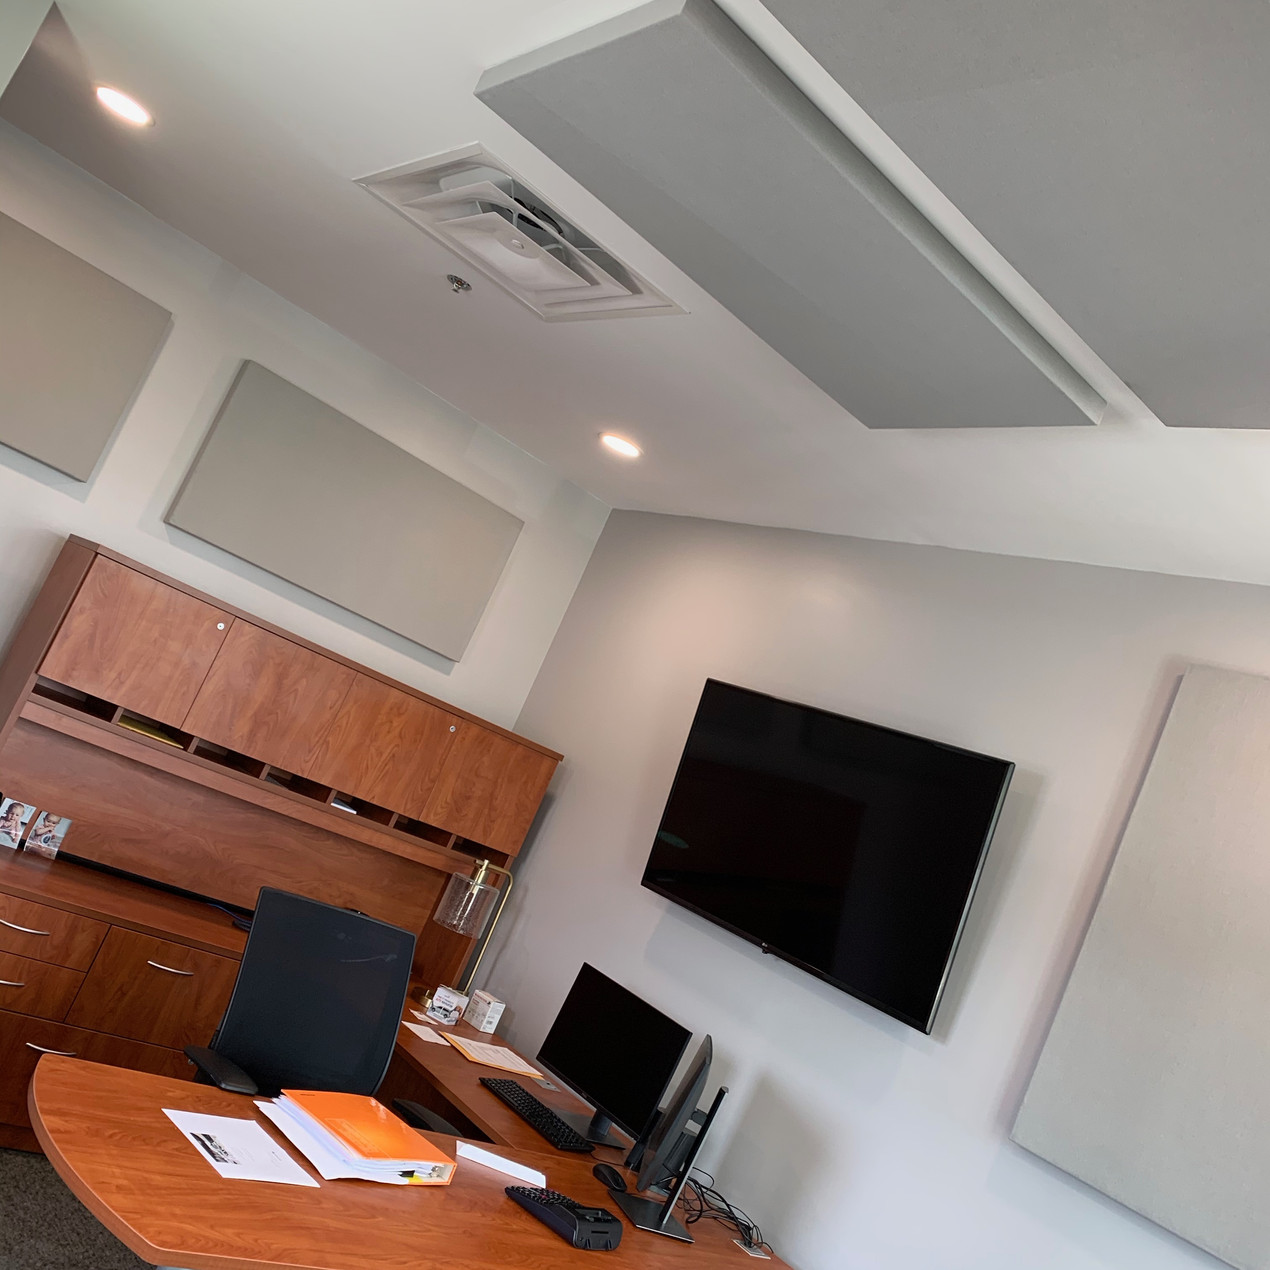 They can be placed anywhere to correct reverb in a large service center or office (as pictured).  In this case the service technicians could not understand or hear the clients on the other side of the desk when coming in for service on their car.  In the office, the reverb from a large dealership, created an unworkable space.  After calculating the size of the room and reverb, a design could begin to take shape of placement for reverb reduction and keeping with the clean lines and style of the new dealership via an array of color selections that are available.  Not only has the reverb been reduced and clarity increased, there is a new speed in processing requests.  So next time you are thinking of a solution that creates speed with look, Think Sound Proof Atlanta, Custom Soundproofing Authorities.